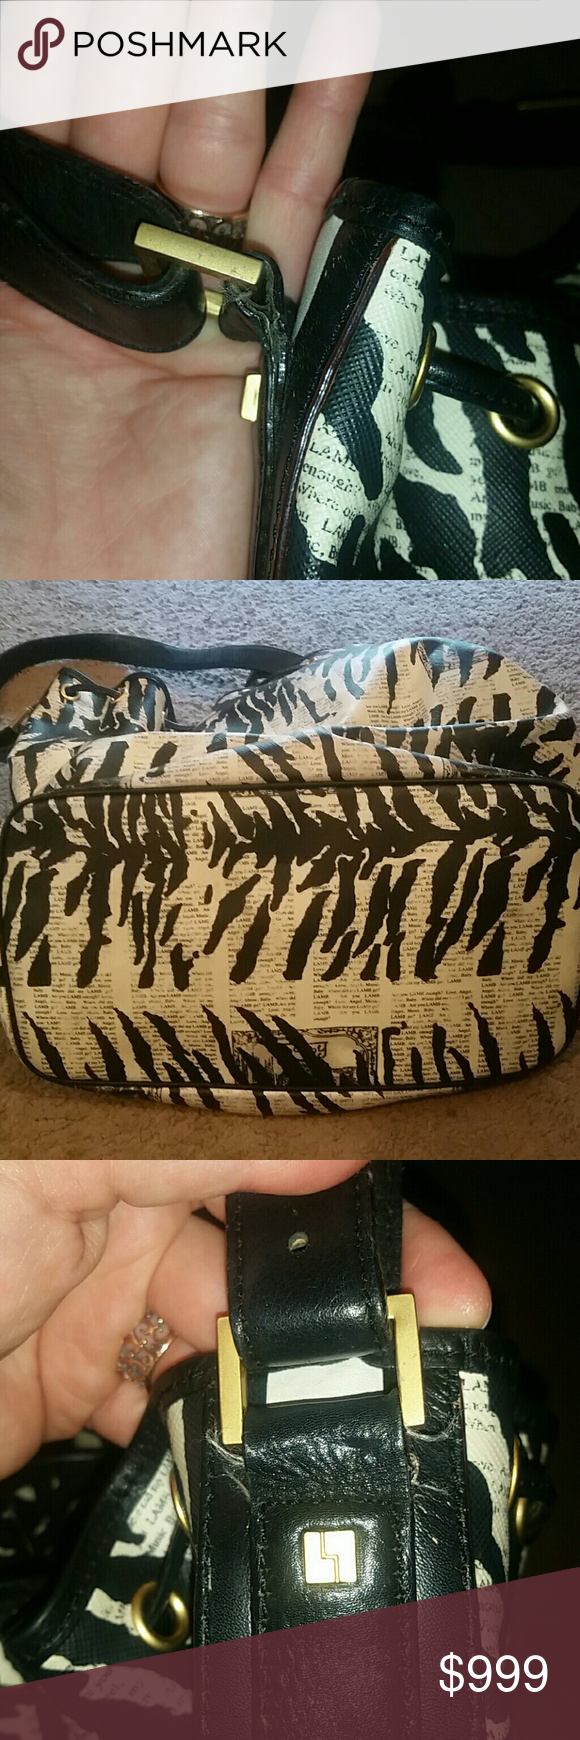 L.A.M.B additional pictures See previous post L.A.M.B. Bags Shoulder Bags